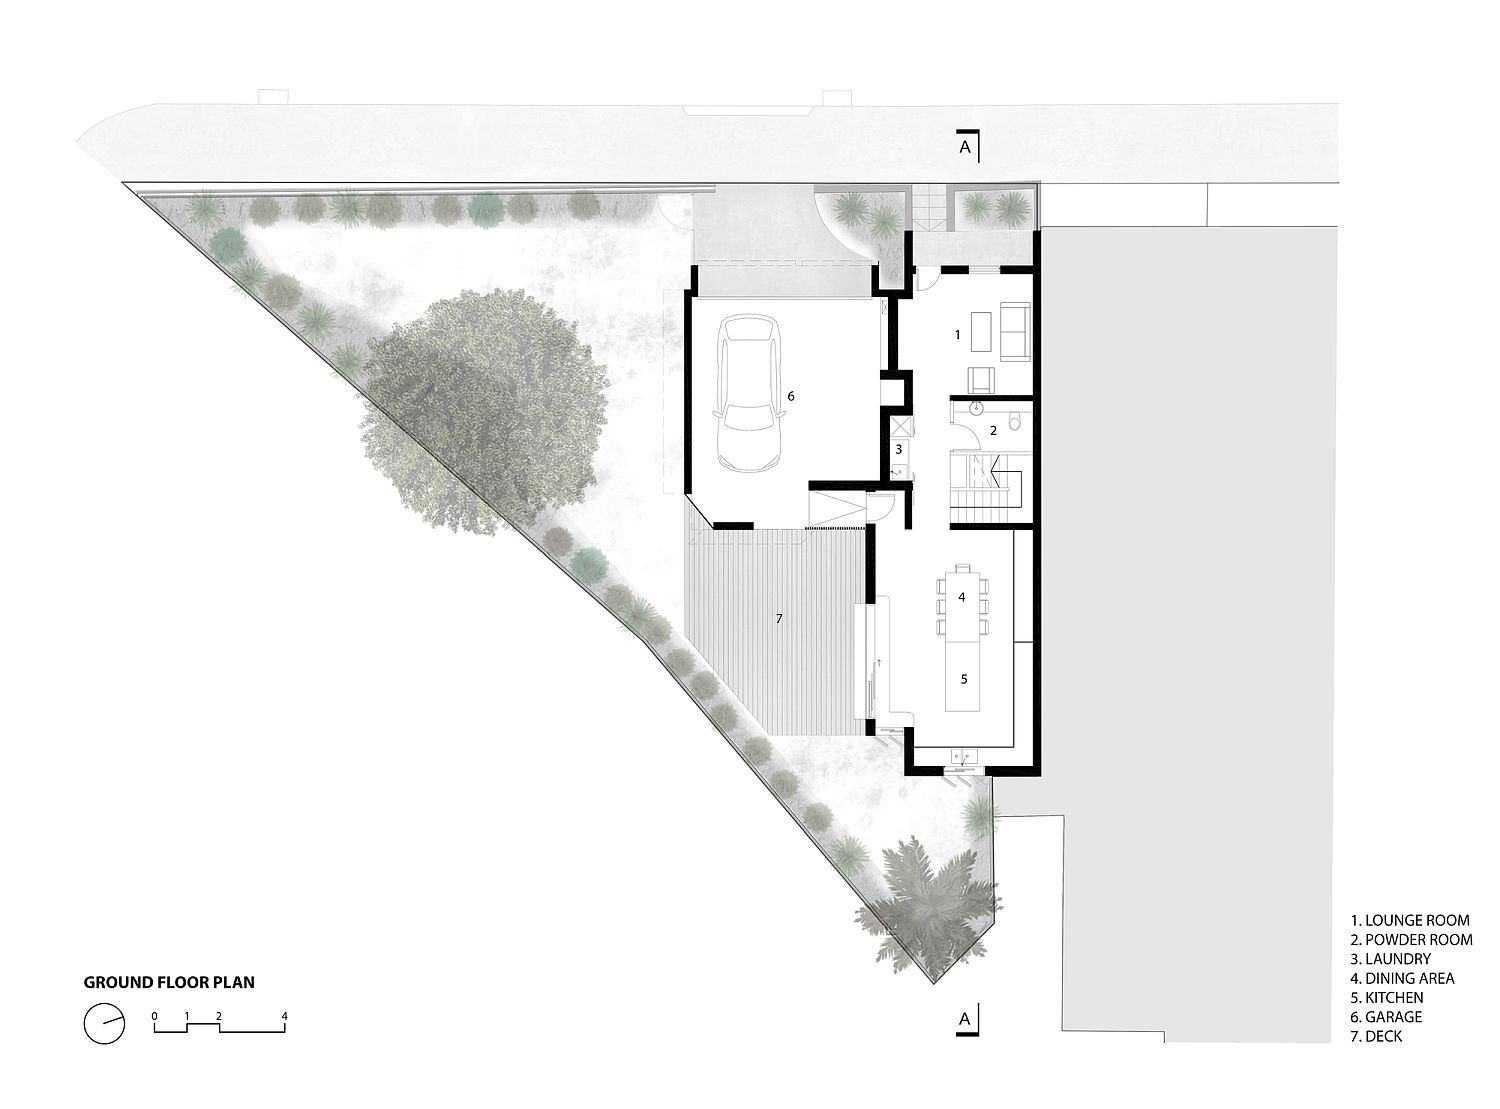 Ground floor plan of the House 2040